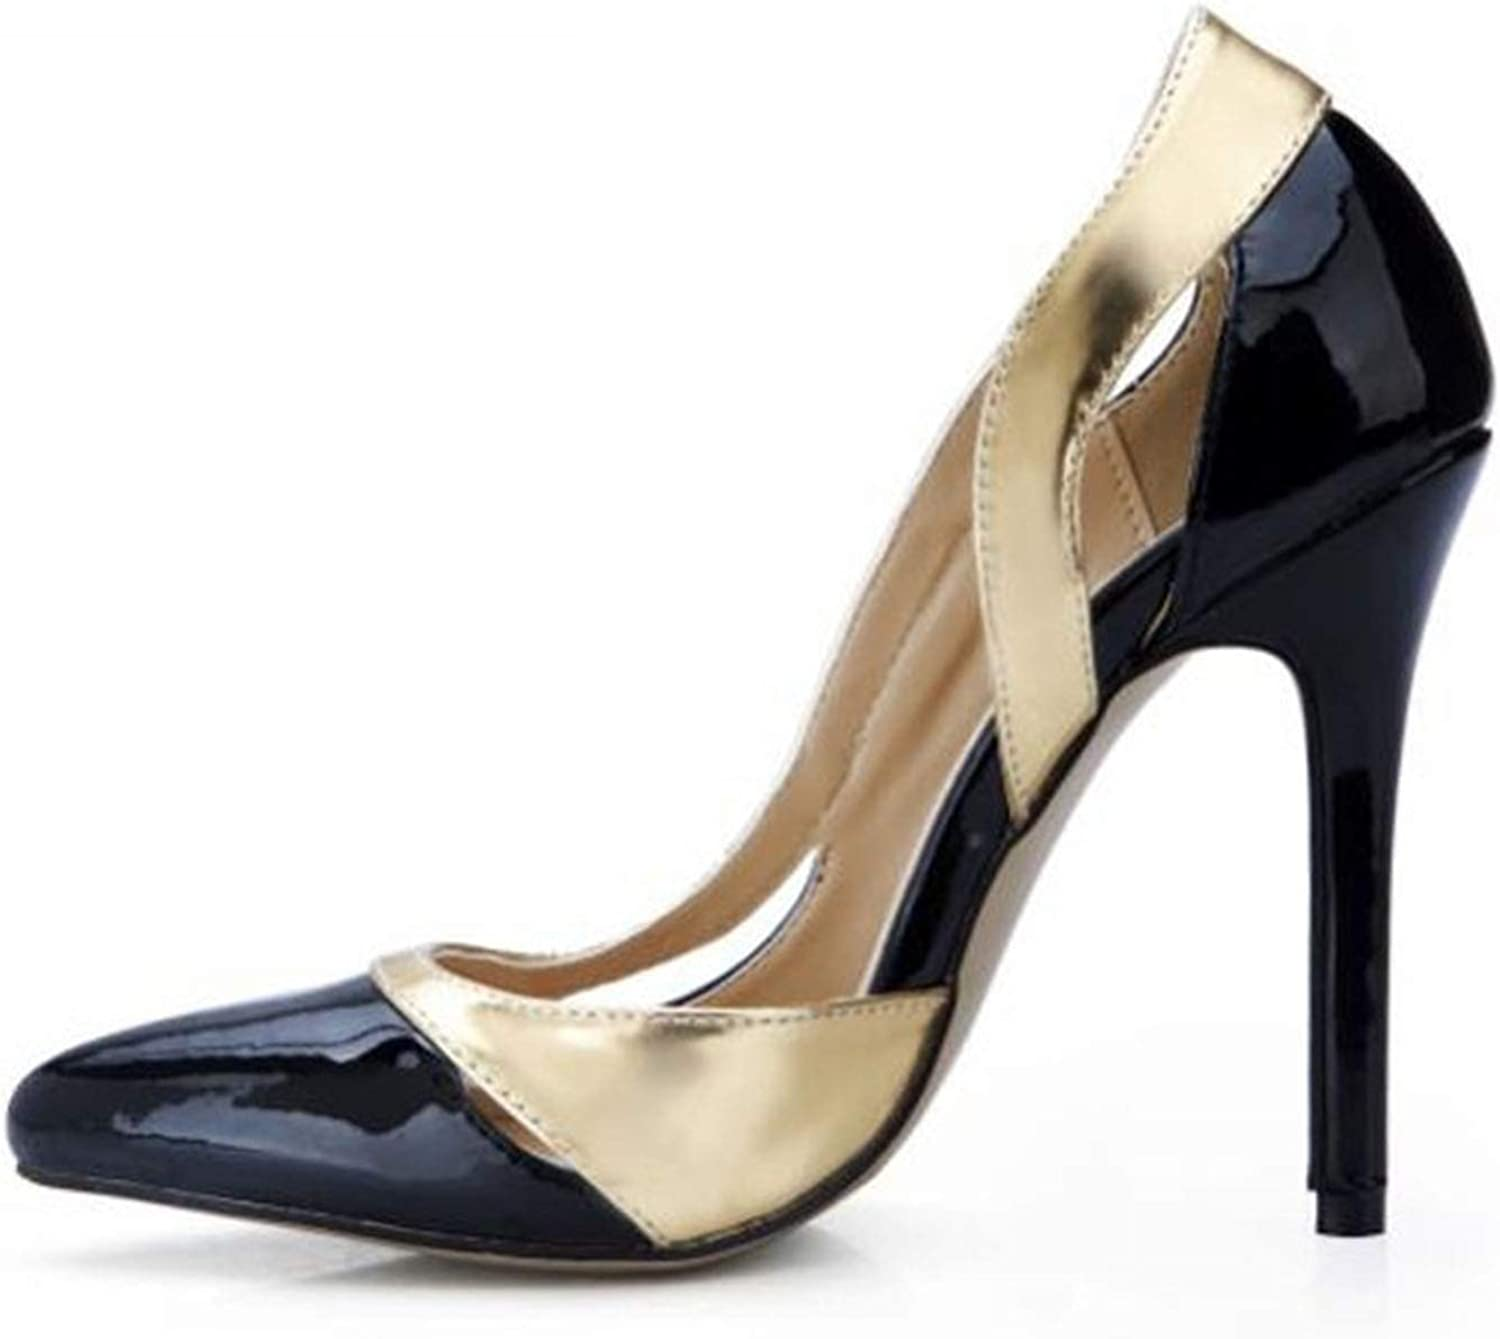 12 cm Thin High Heels Summer shoes Woman Sexy Sandals Patent Leather Pumps